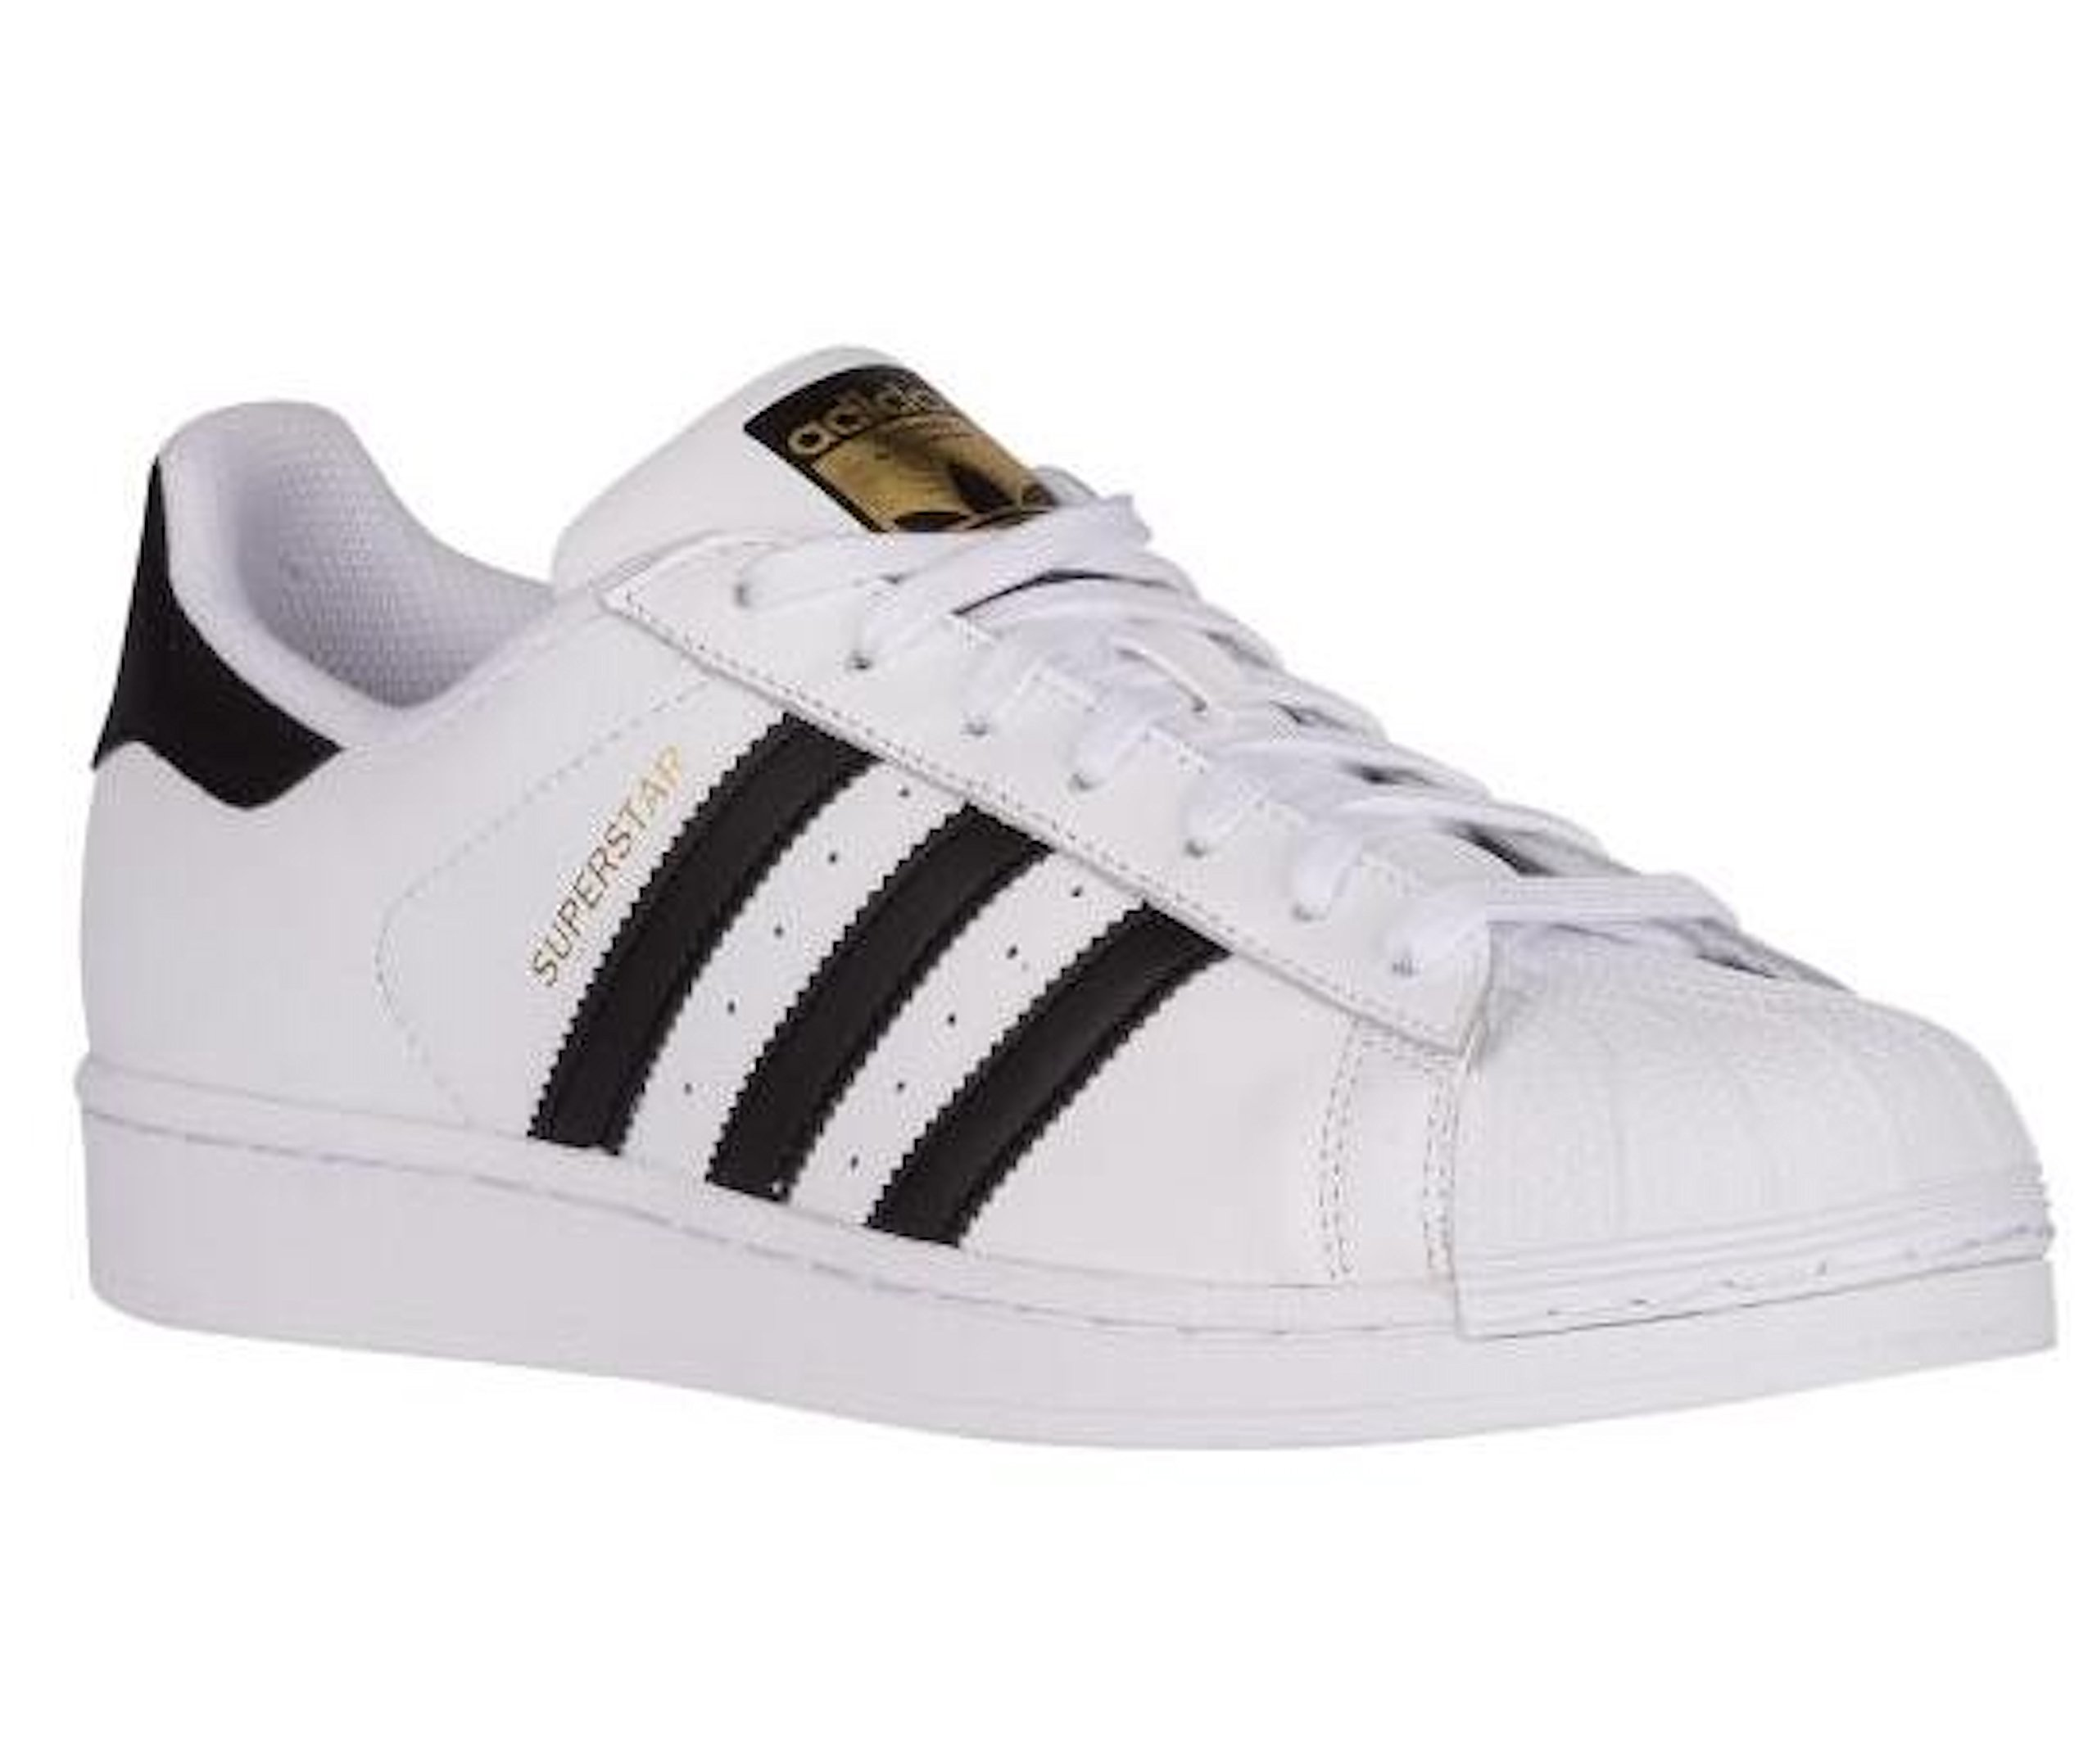 huge discount ac0f8 1d7e6 ADIDAS SUPERSTAR CLASSIC BIANCO-NERO S81858 - 38, BIANCO  Amazon.it  Libri